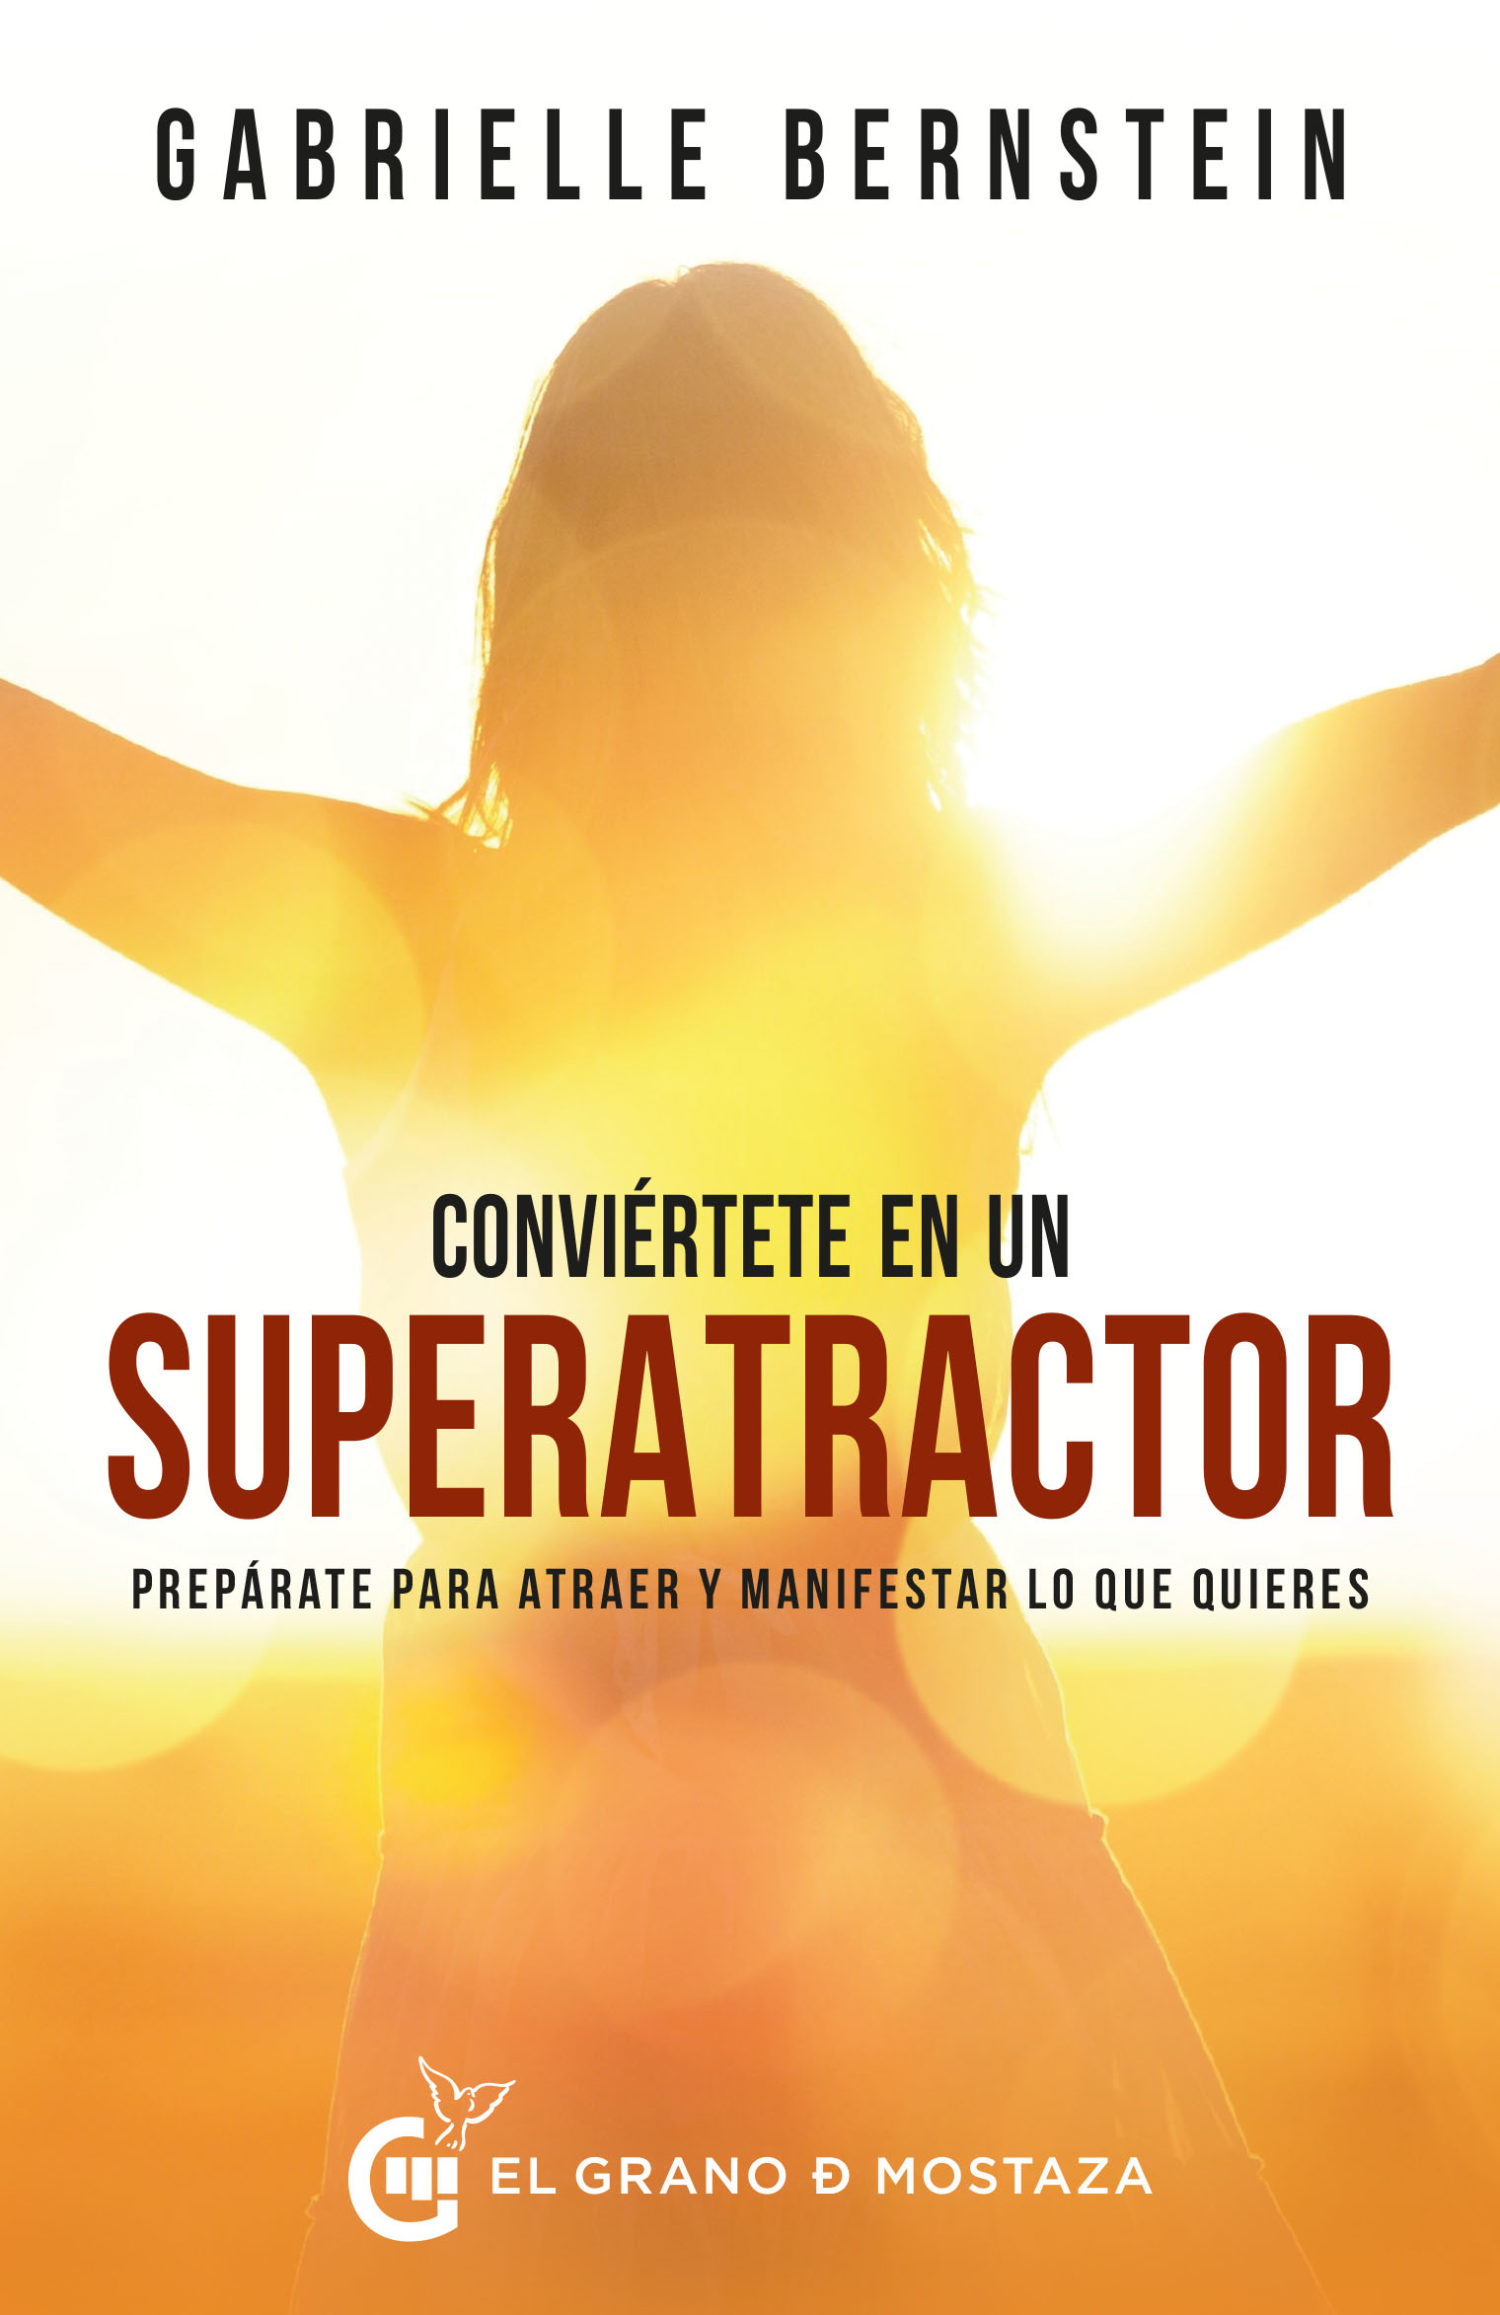 Superatractor